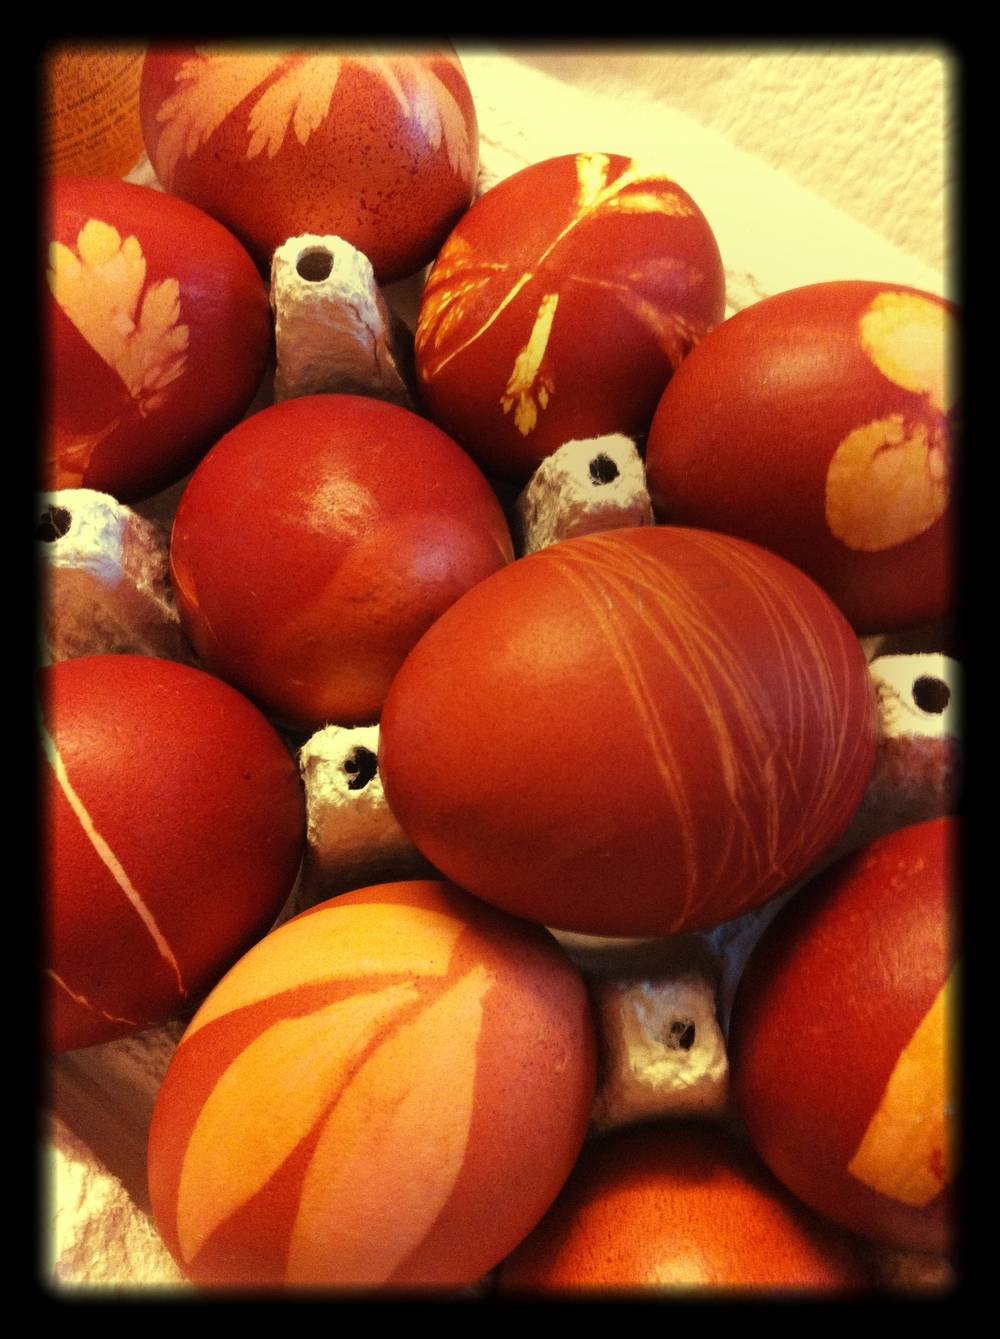 Dyed_and_decorated_Easter_eggs